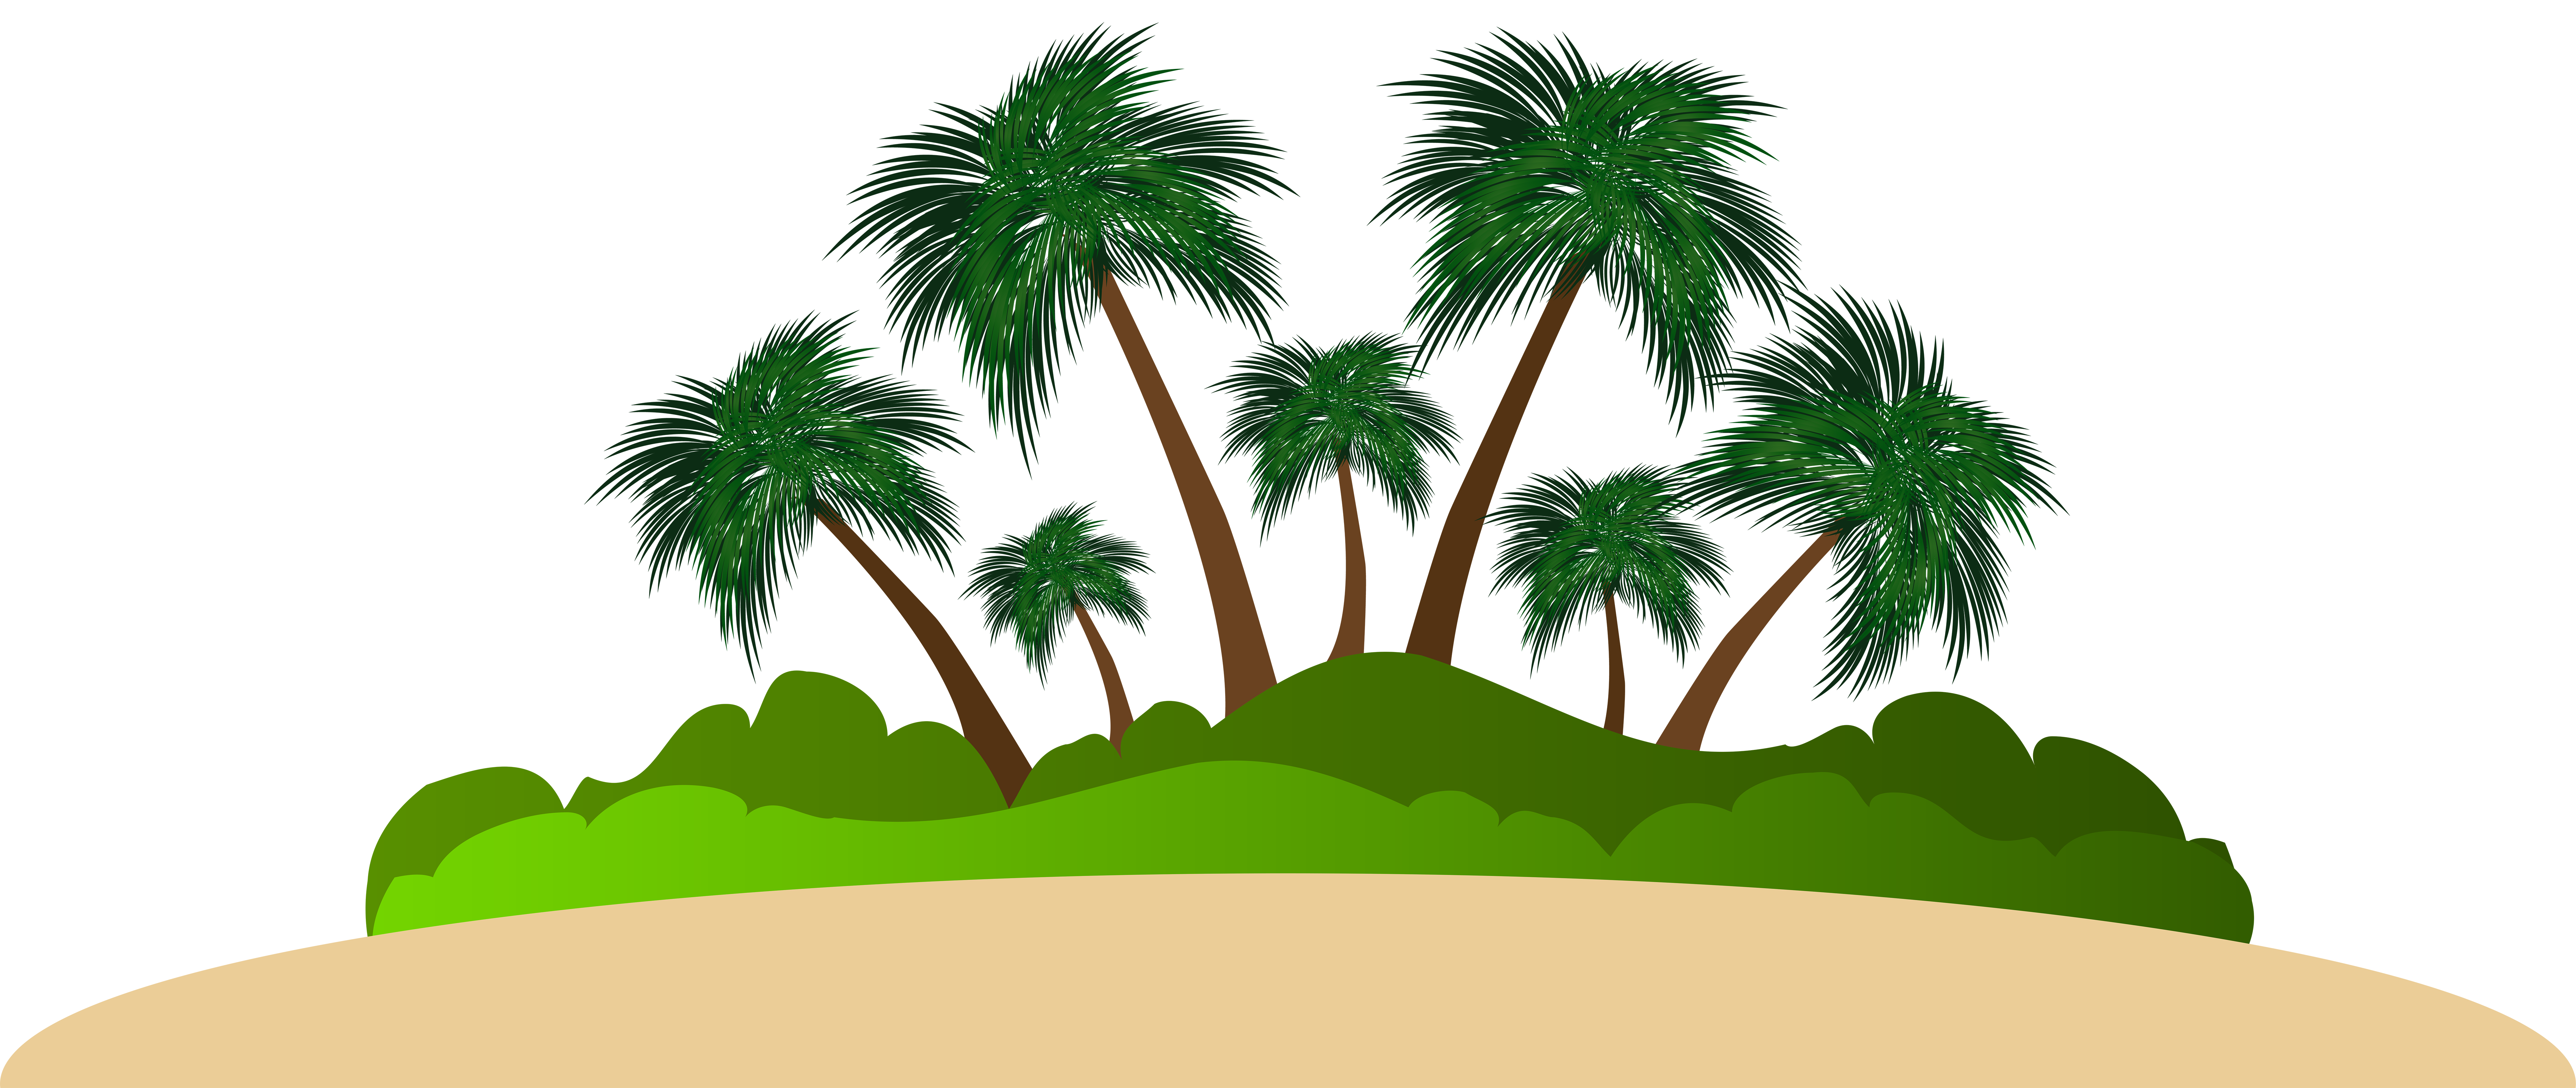 Island palm tree clipart svg download Palm Island PNG Clip Art Image svg download